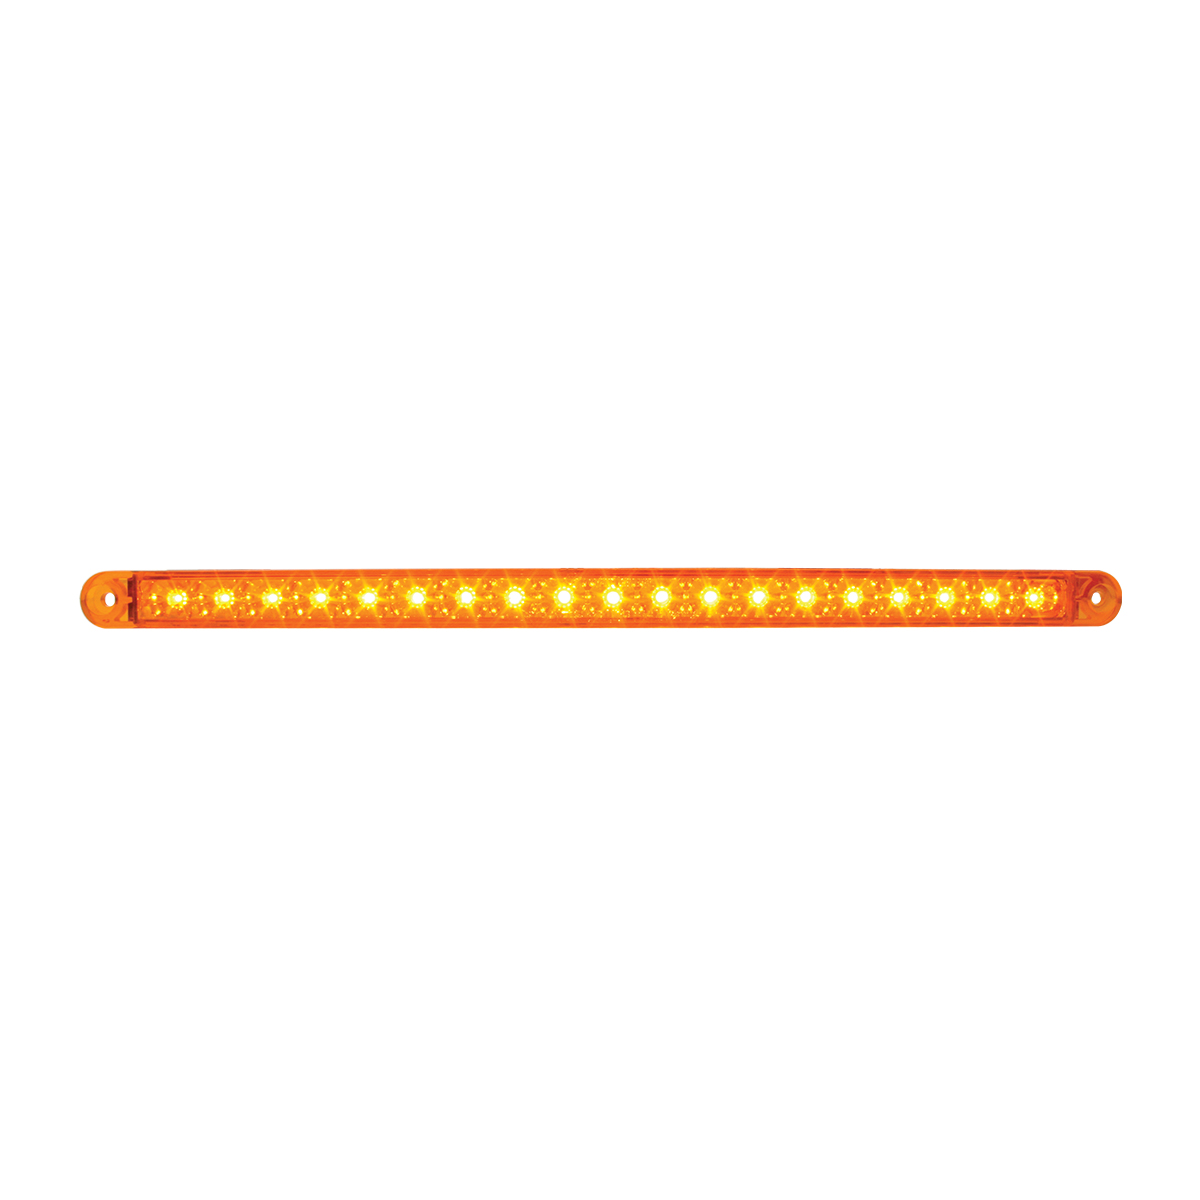 "76380 12"" Flush Mount Light Bar"